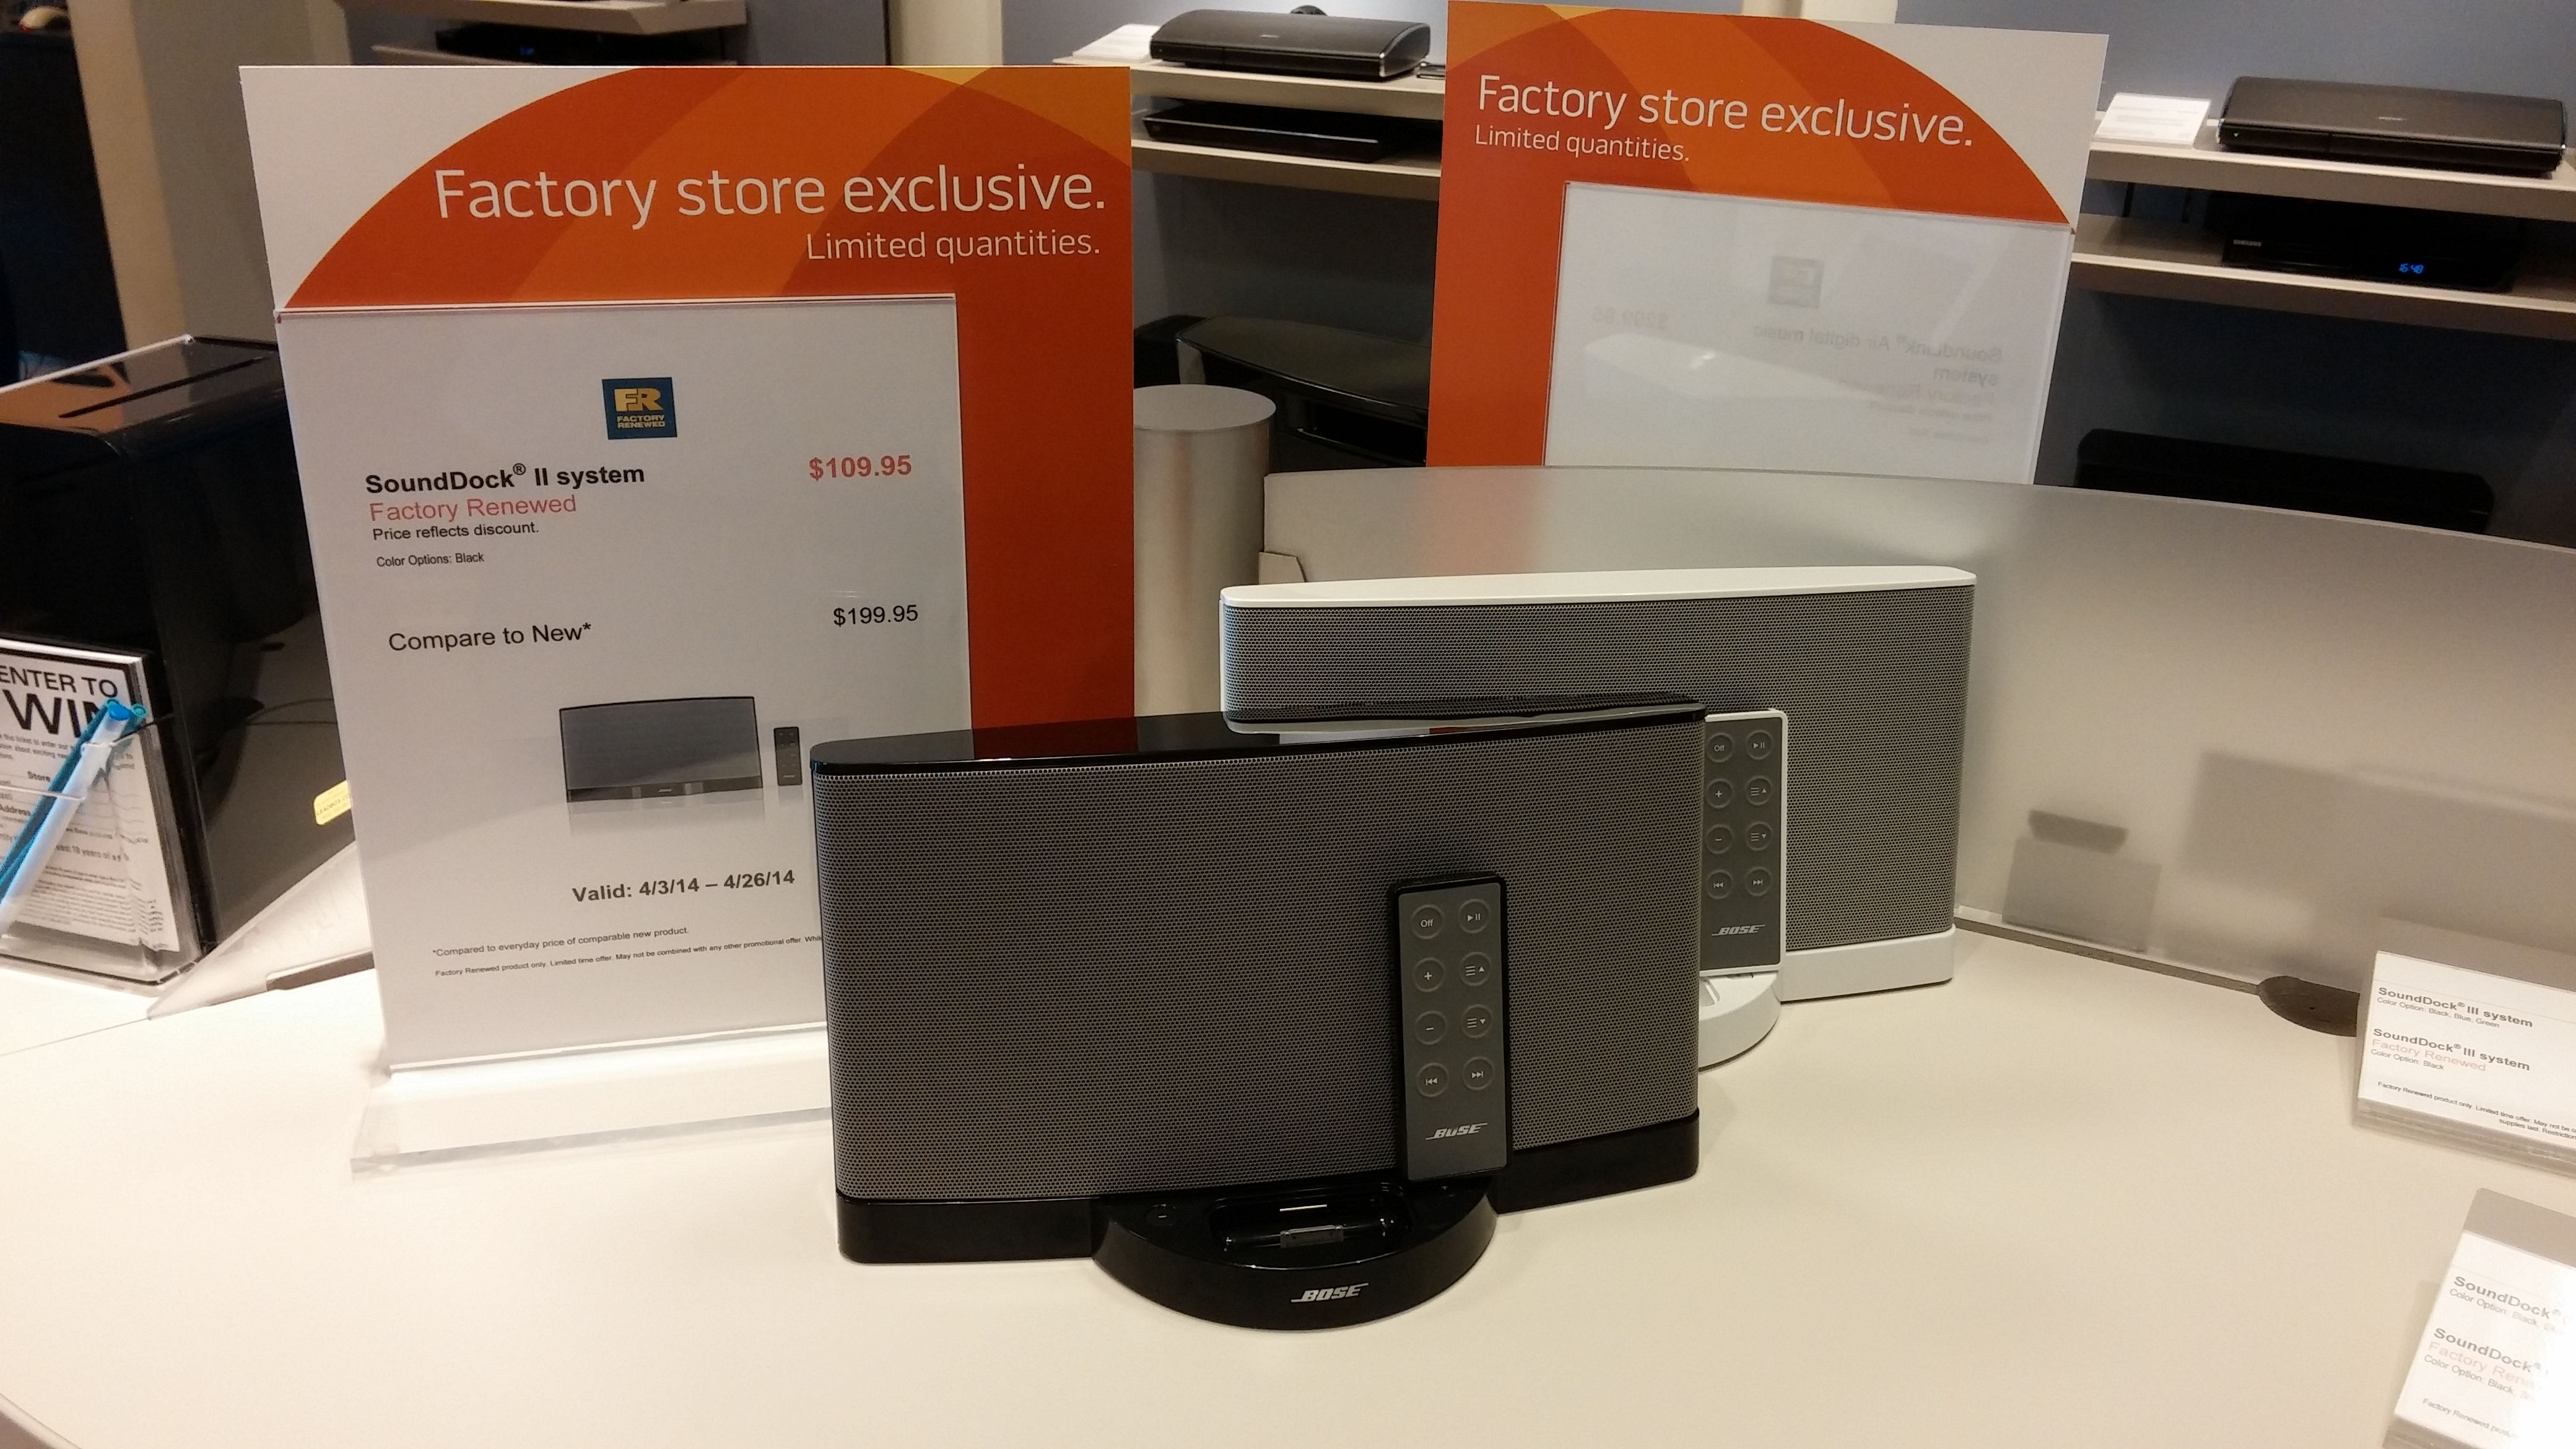 Nifty Sound Dock System From Bose Would Be Perfect For The Office